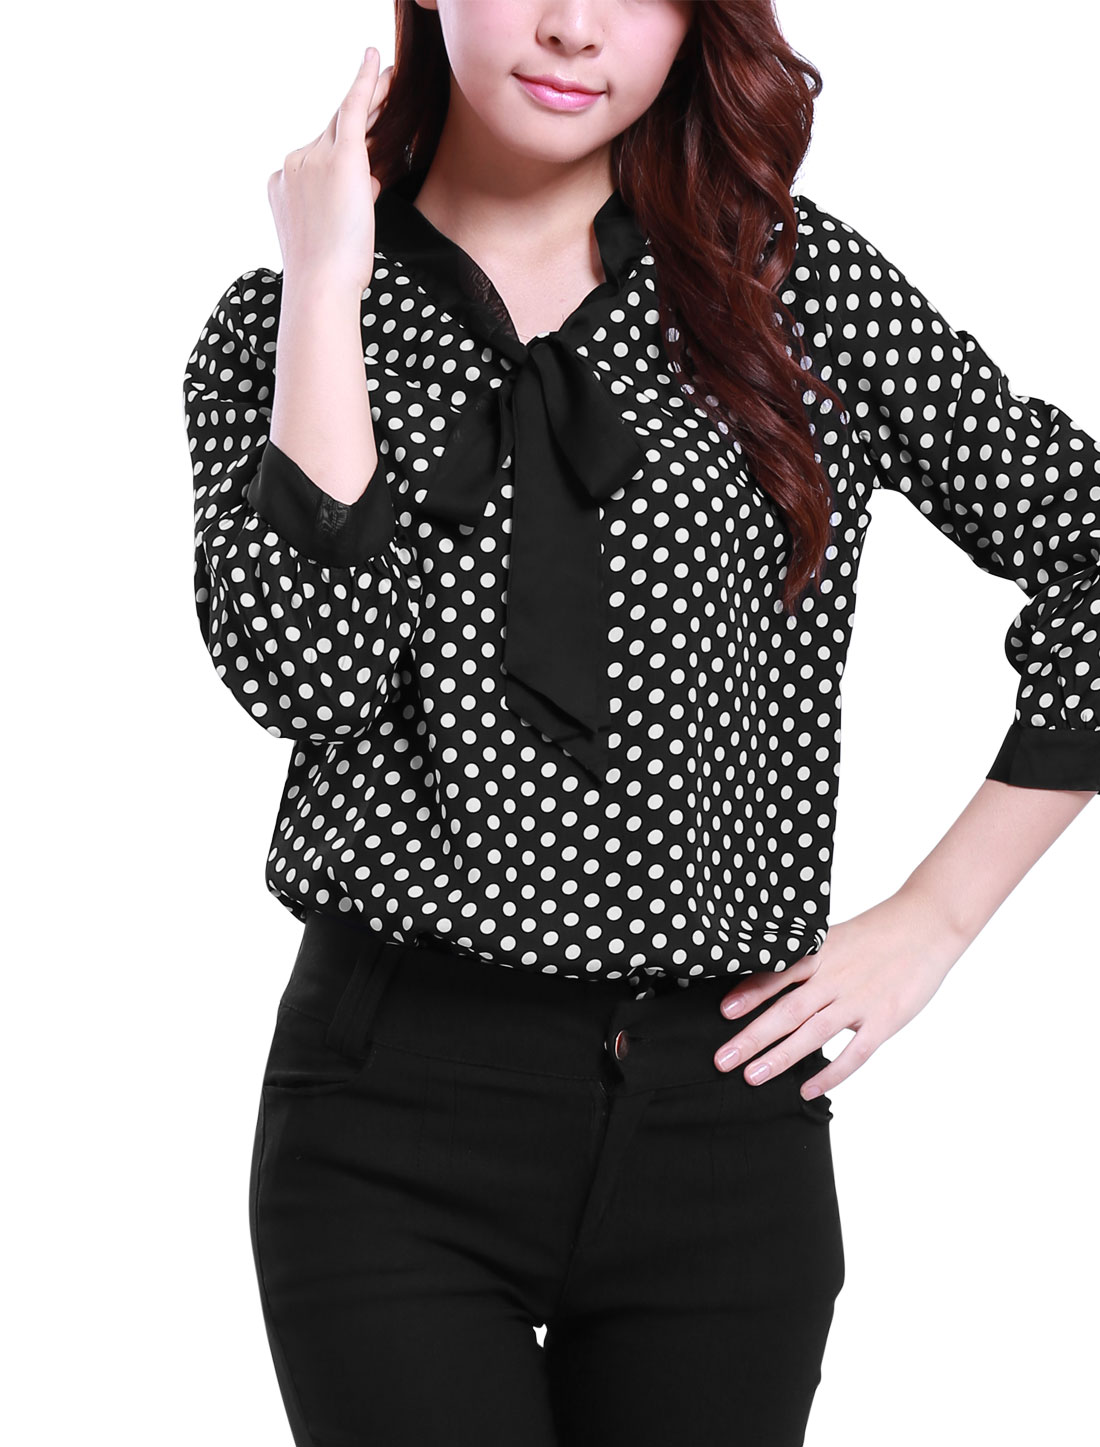 Pullover Black White Polka-Dots Prints Leisure Blouse for Lady L